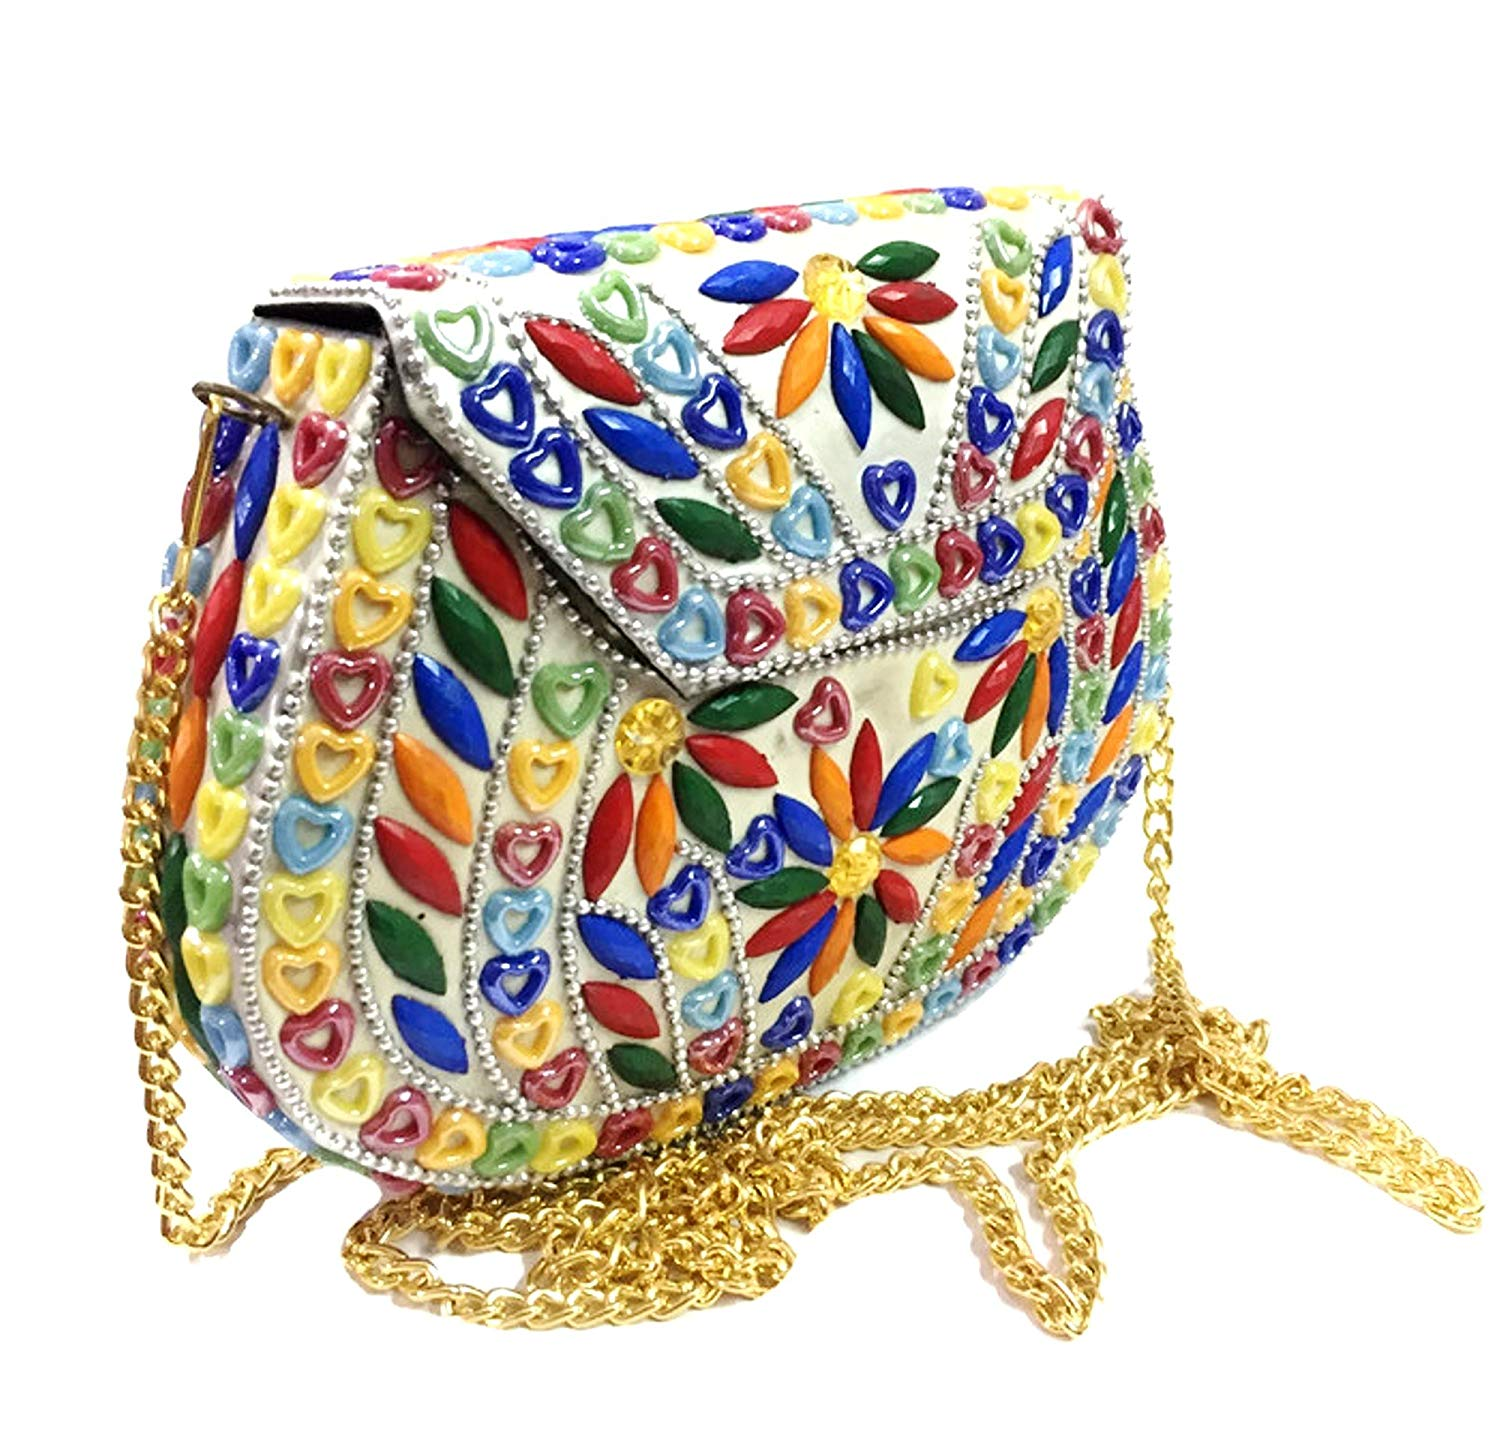 Party Bridal Box Clutch for women Handmade clutch Metal purse wallet sling bag bridal bag Party bags Ethnic Clutch